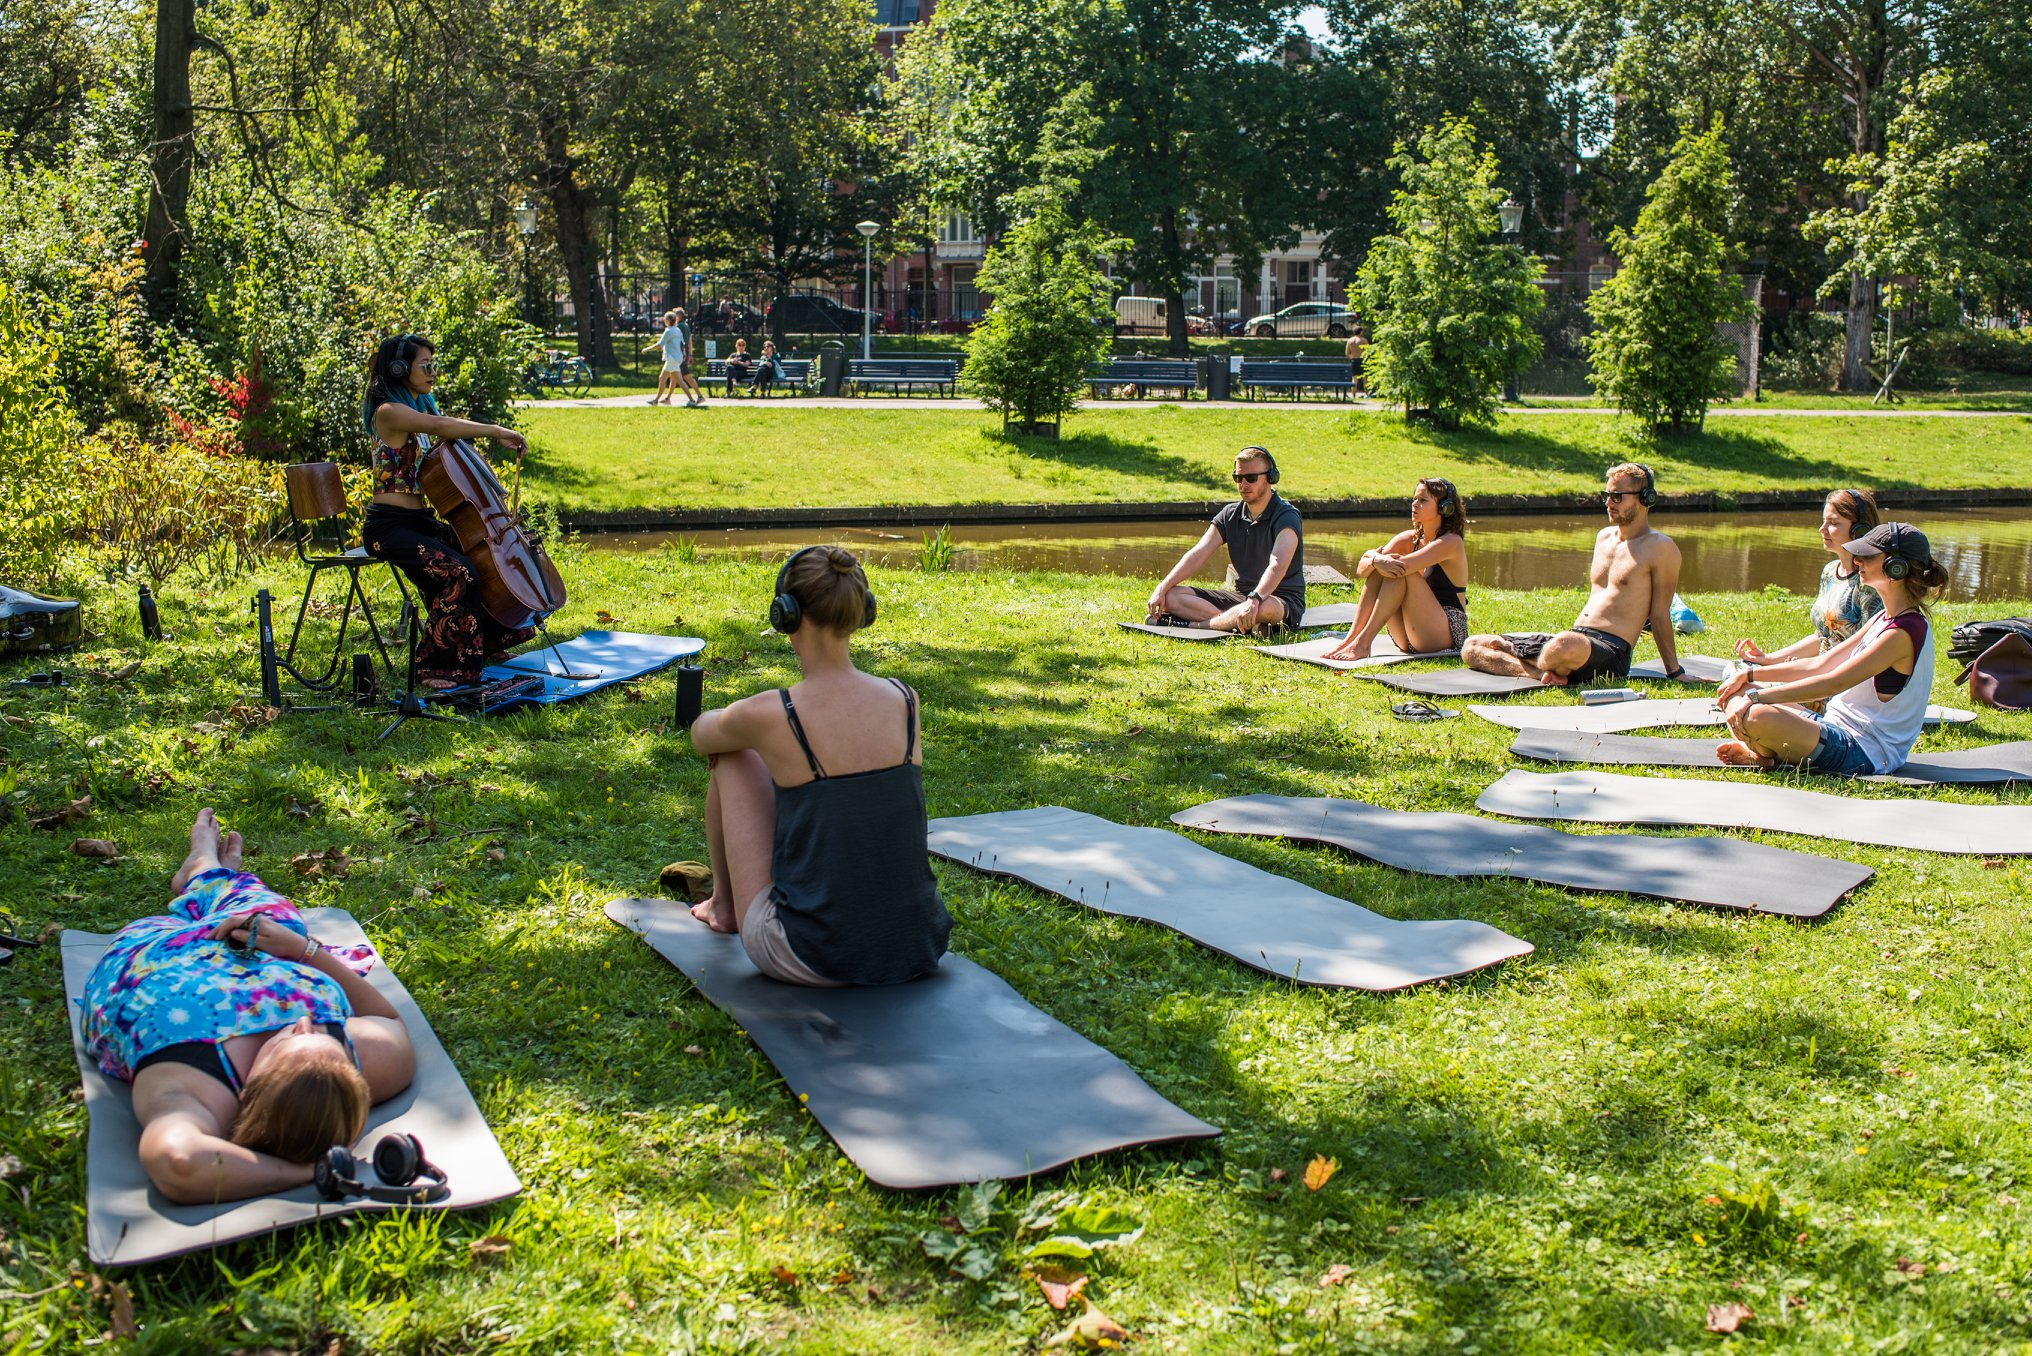 Outdoor edition of Cello Meditatie at Tropisch Oost, in Oosterpark (photo by Denise Motz)